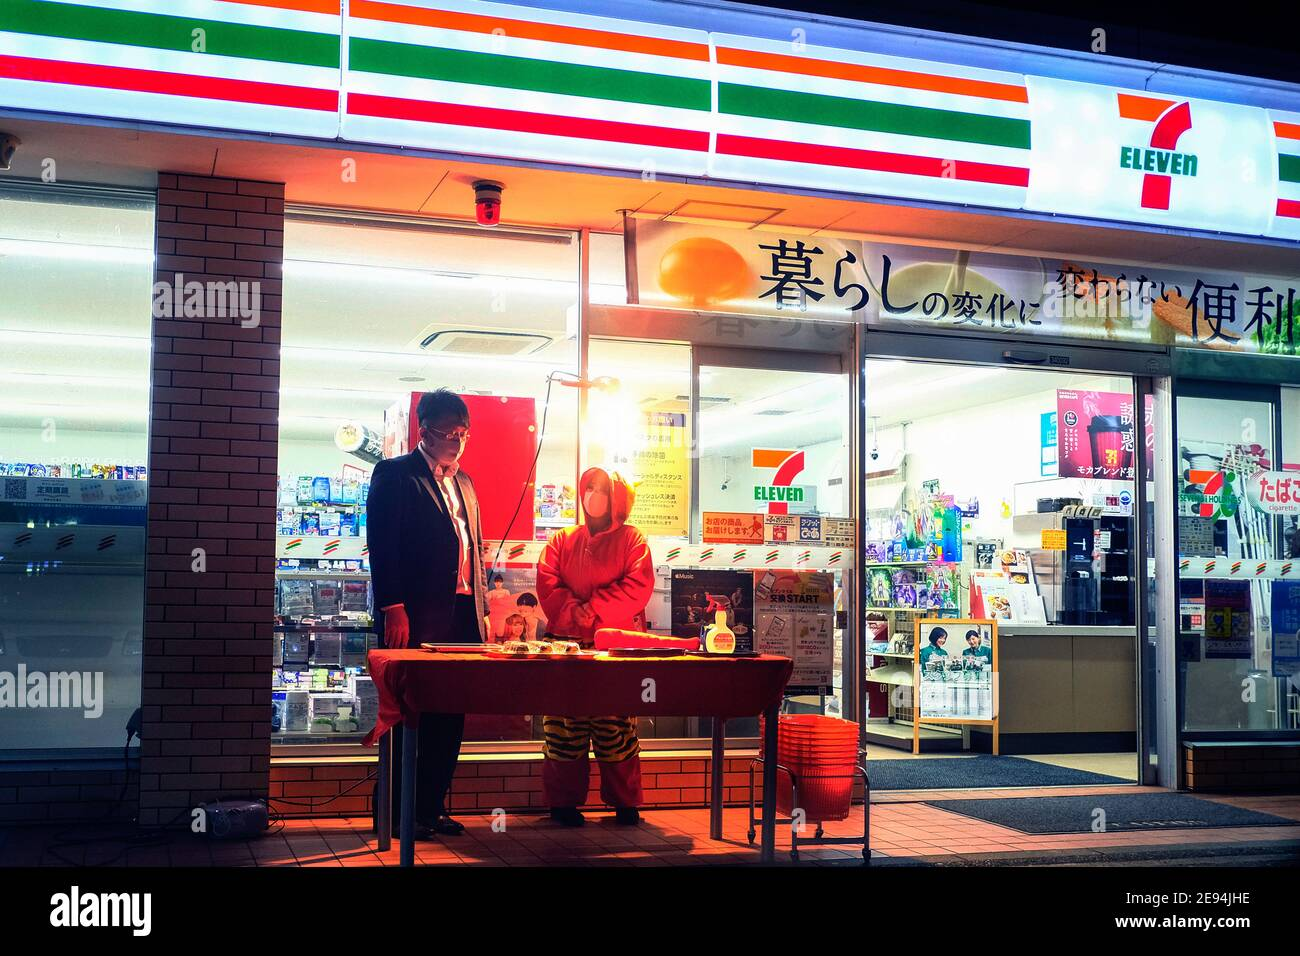 Is 7 Eleven Open On Christmas Day 2021 Page 2 7 Eleven Convenience Store High Resolution Stock Photography And Images Alamy